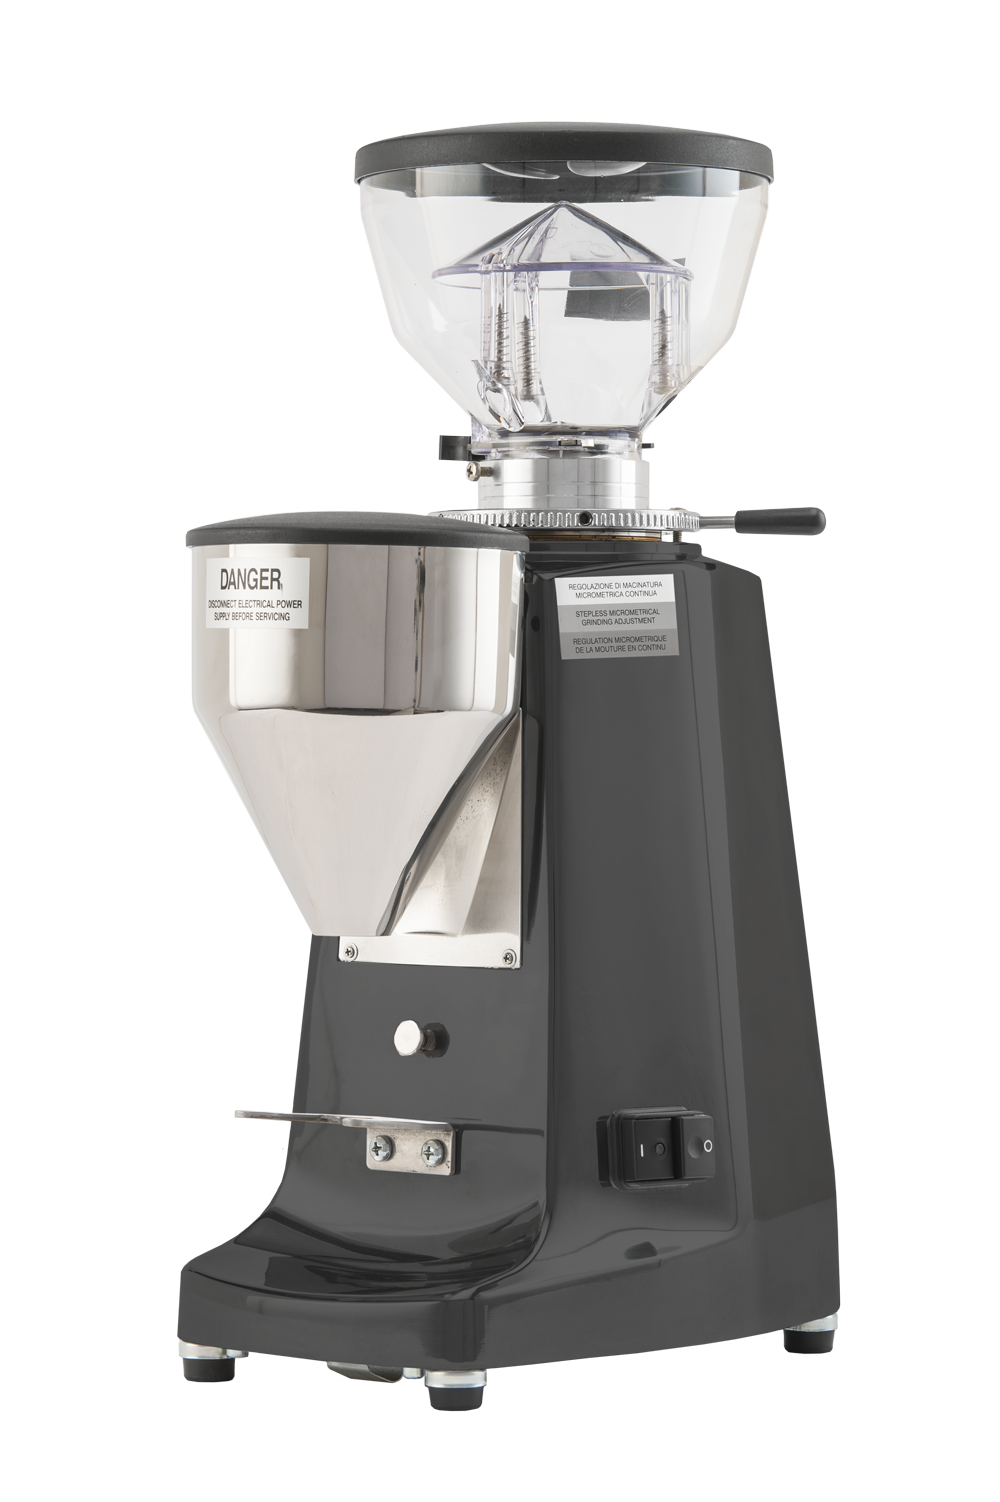 Marzocco D Lux Coffee Grinder